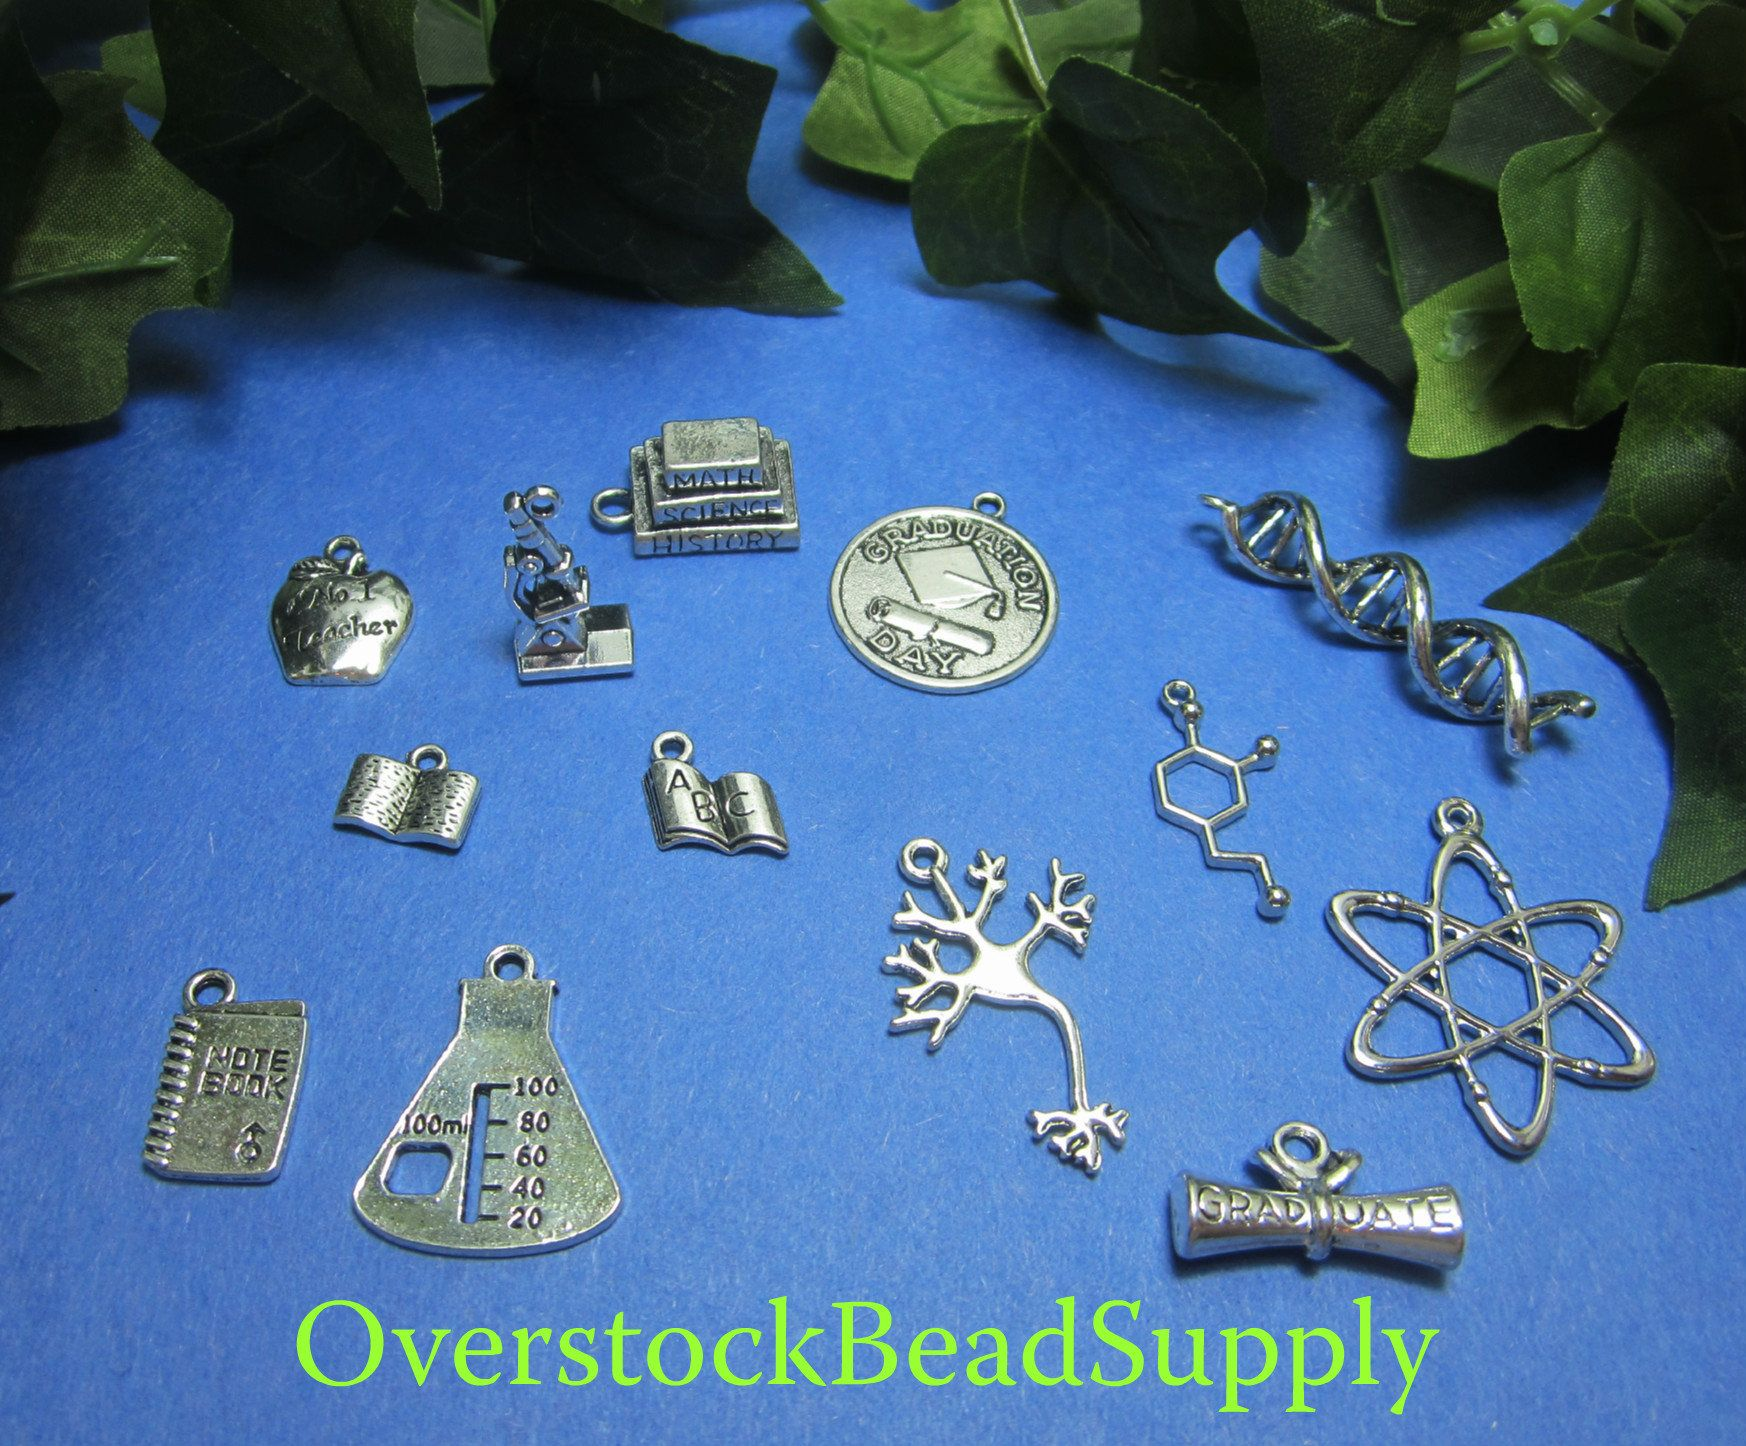 Back to school charm collection college pendants science charms dna back to school charm collection college pendants science charms dna brain cell molecule beaker books notebook graduation 13 pieces 9036 mozeypictures Image collections